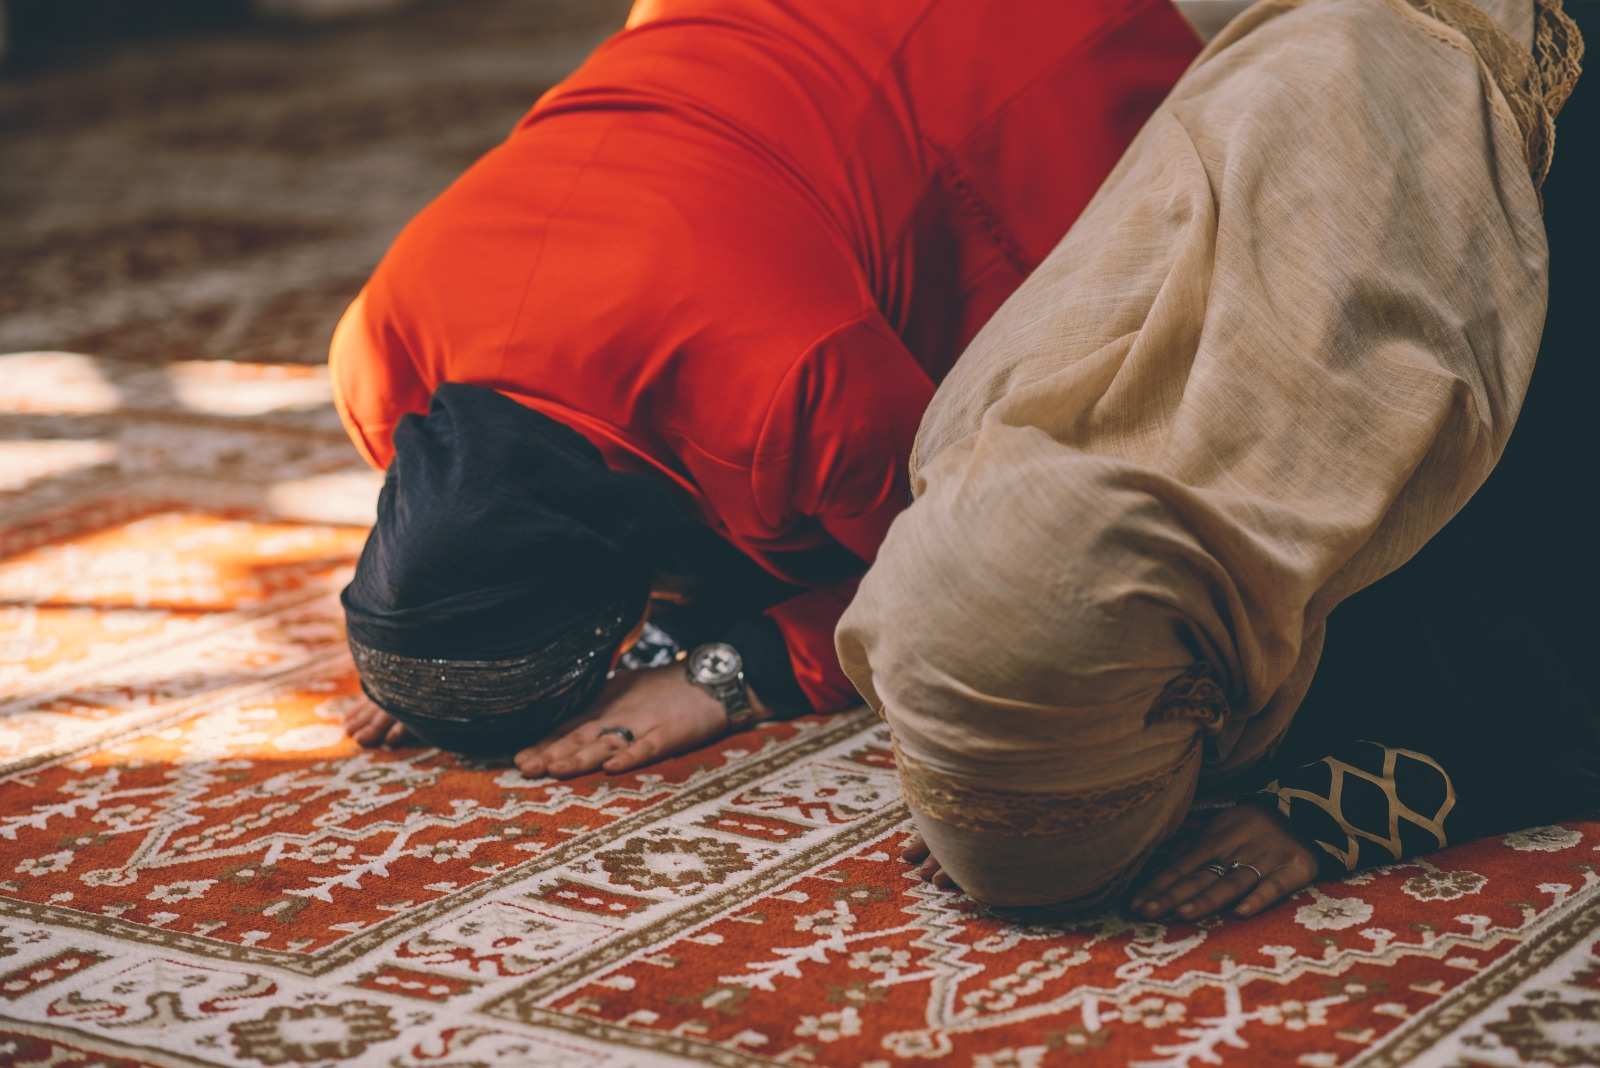 Why Cannot Women Call Out Loud Adhan and Iqamah